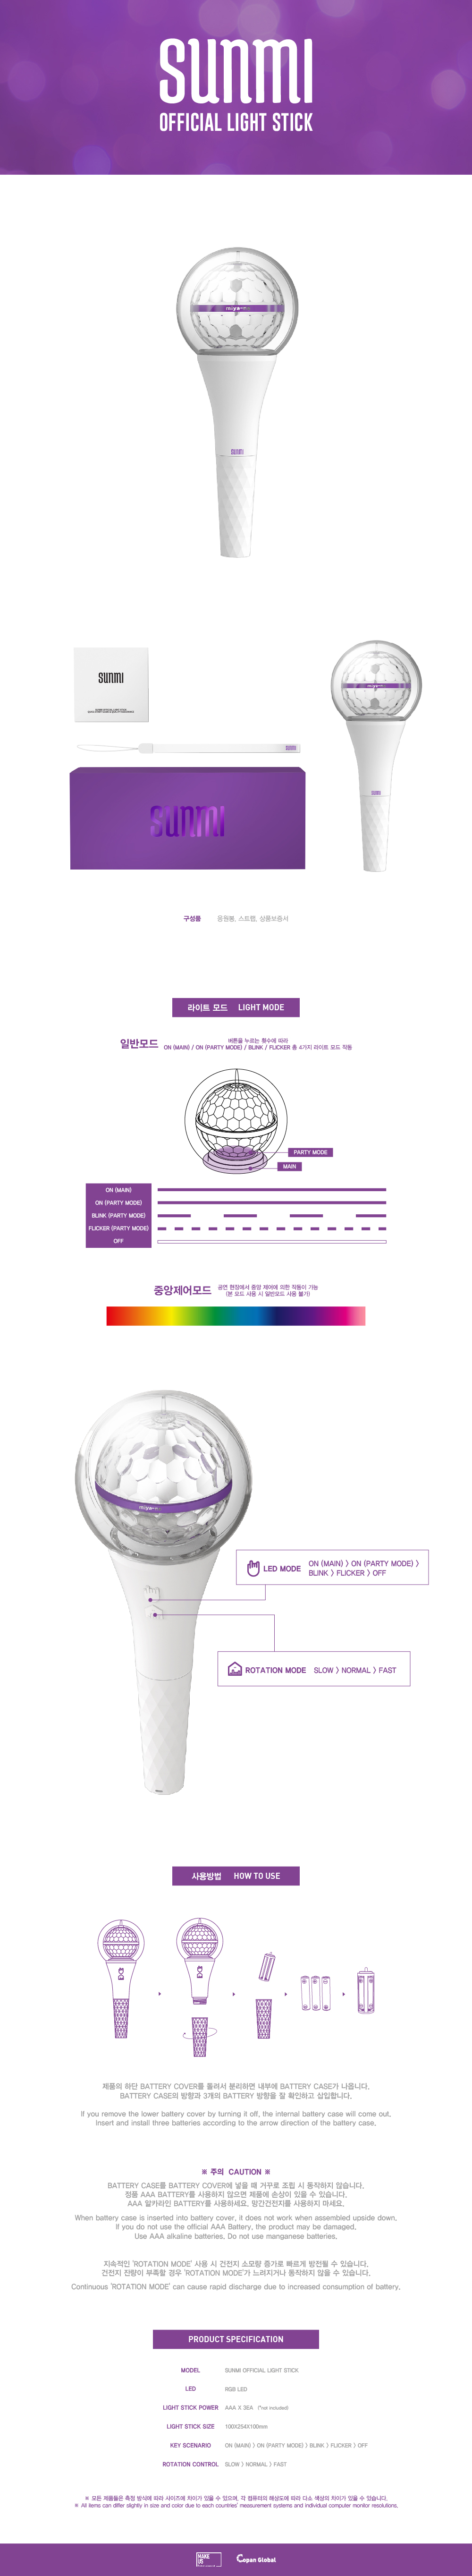 https://www.ktown4u.com/goods_files/bodys/images/lightstick-detail-new.jpg